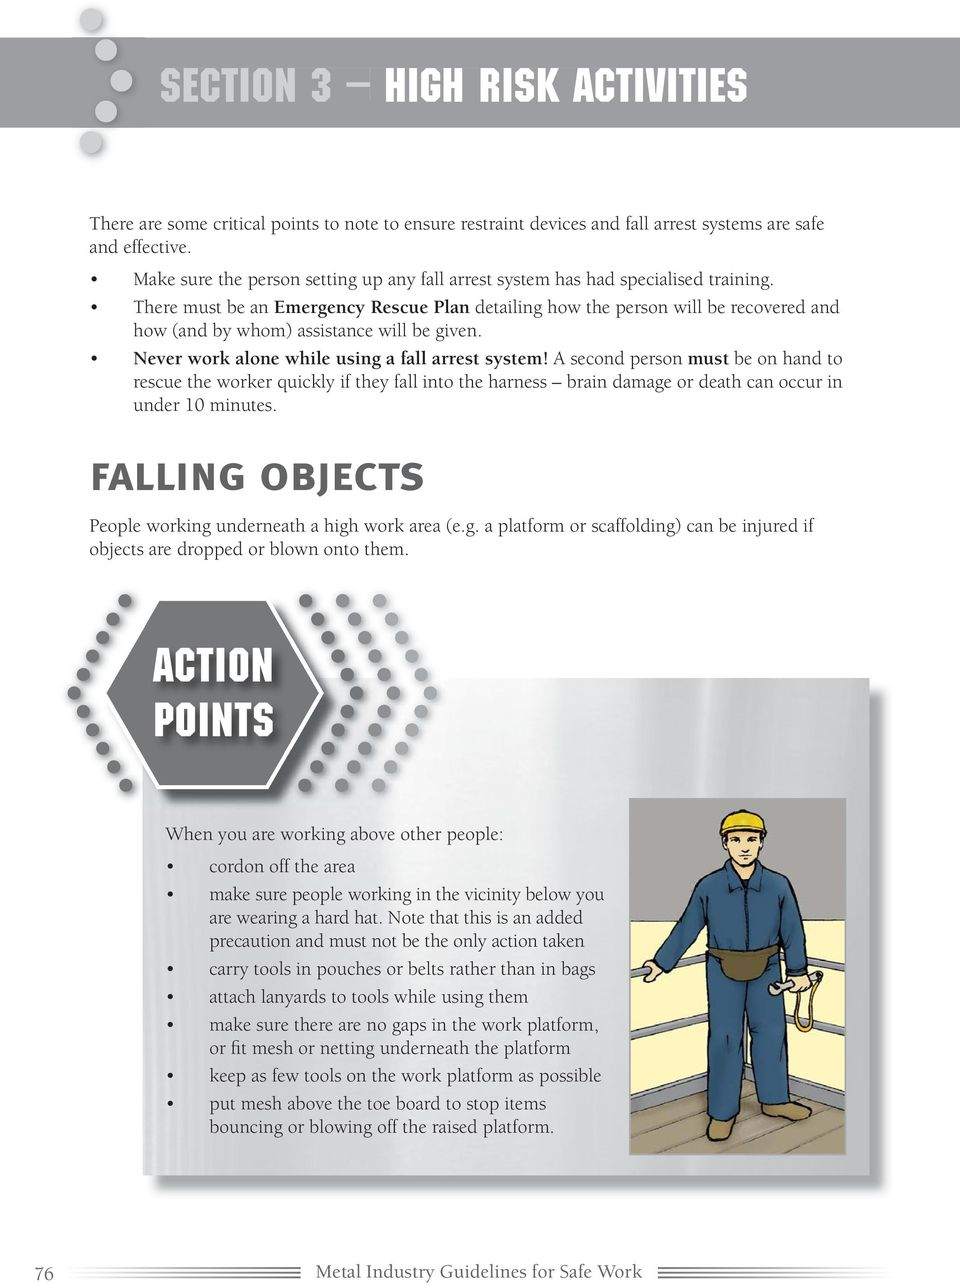 There must be an Emergency Rescue Plan detailing how the person will be recovered and how (and by whom) assistance will be given. Never work alone while using a fall arrest system!